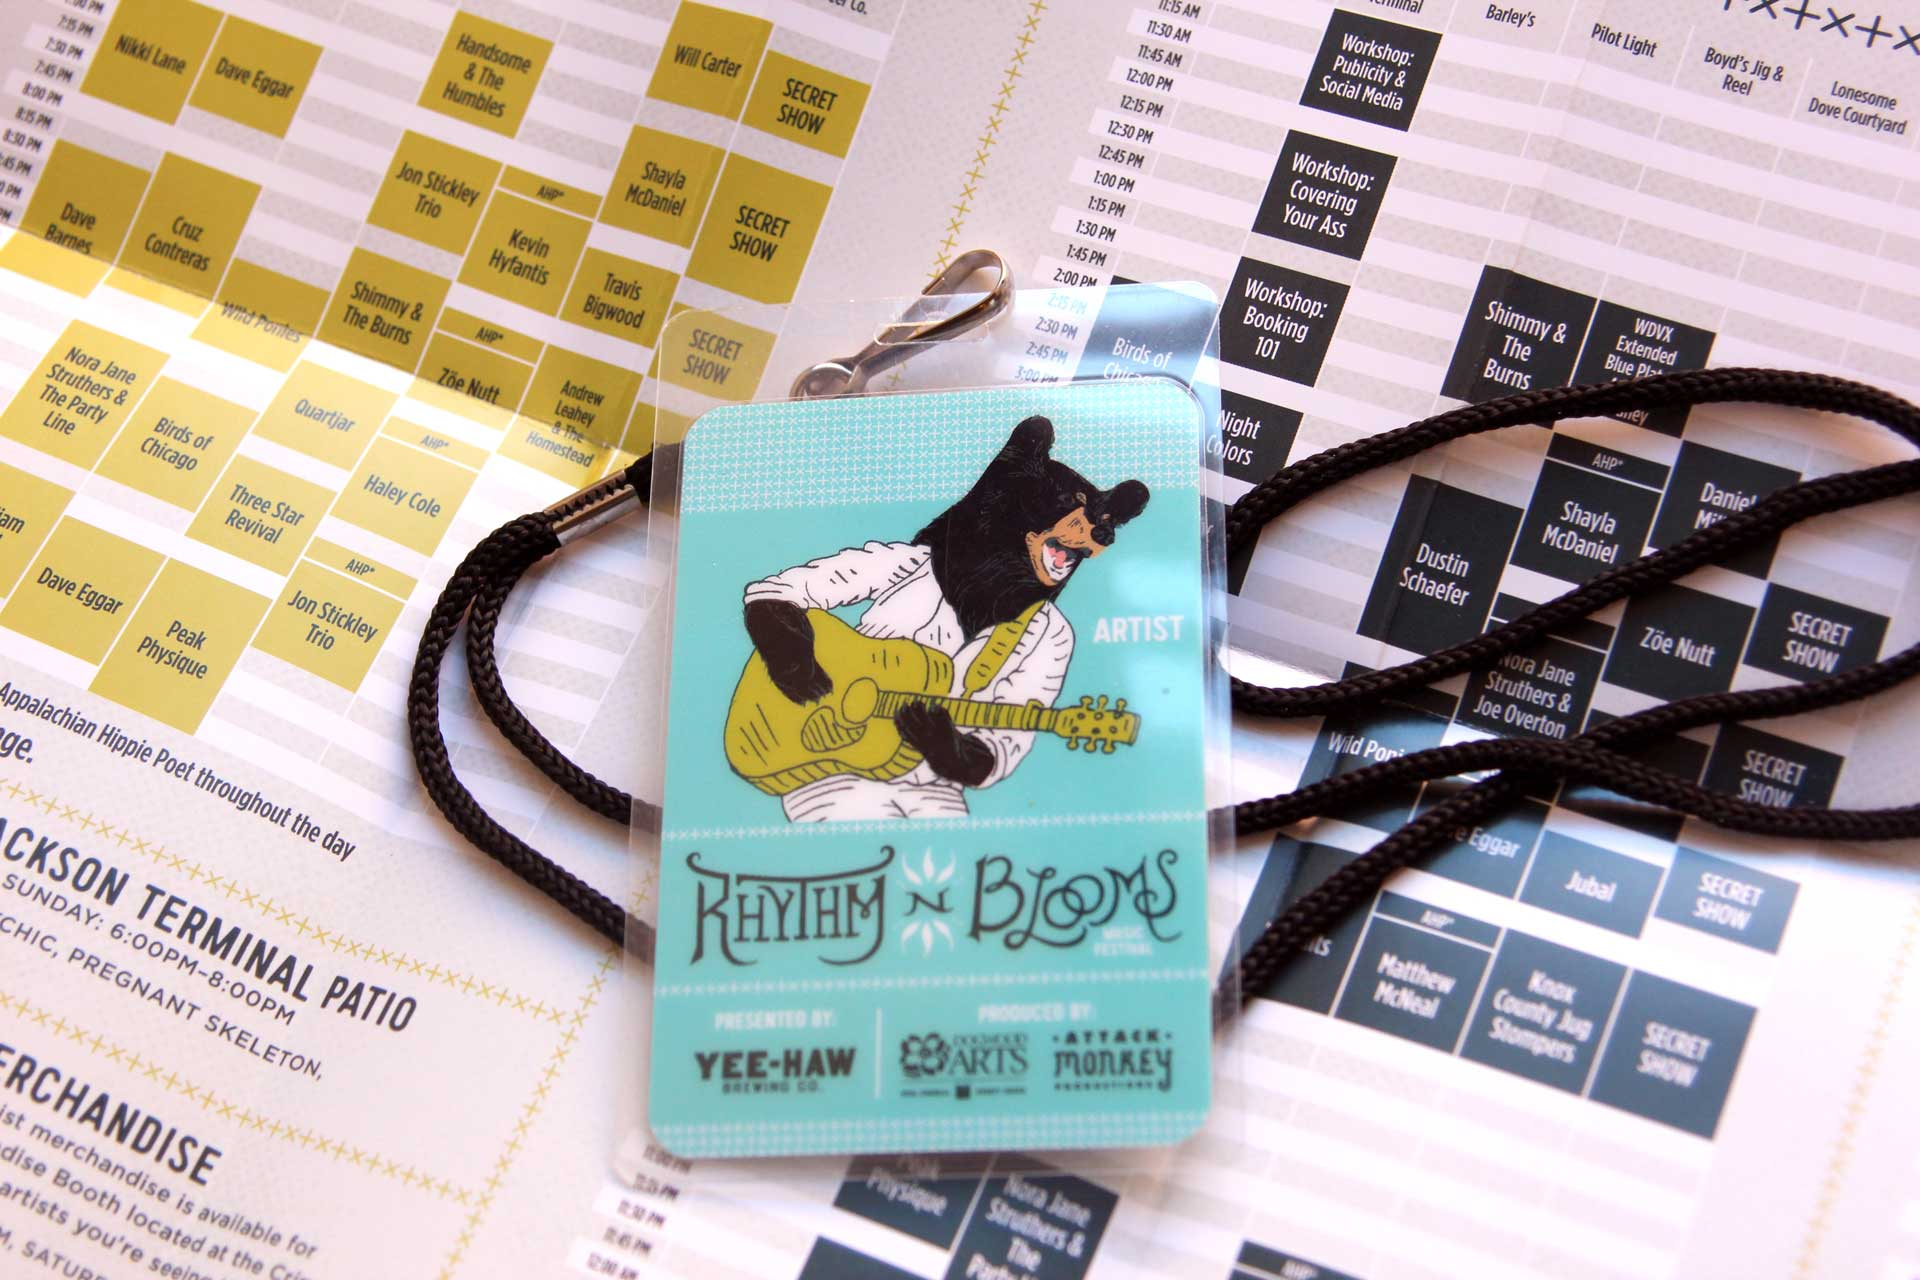 Rhythm N Blooms pass and schedule